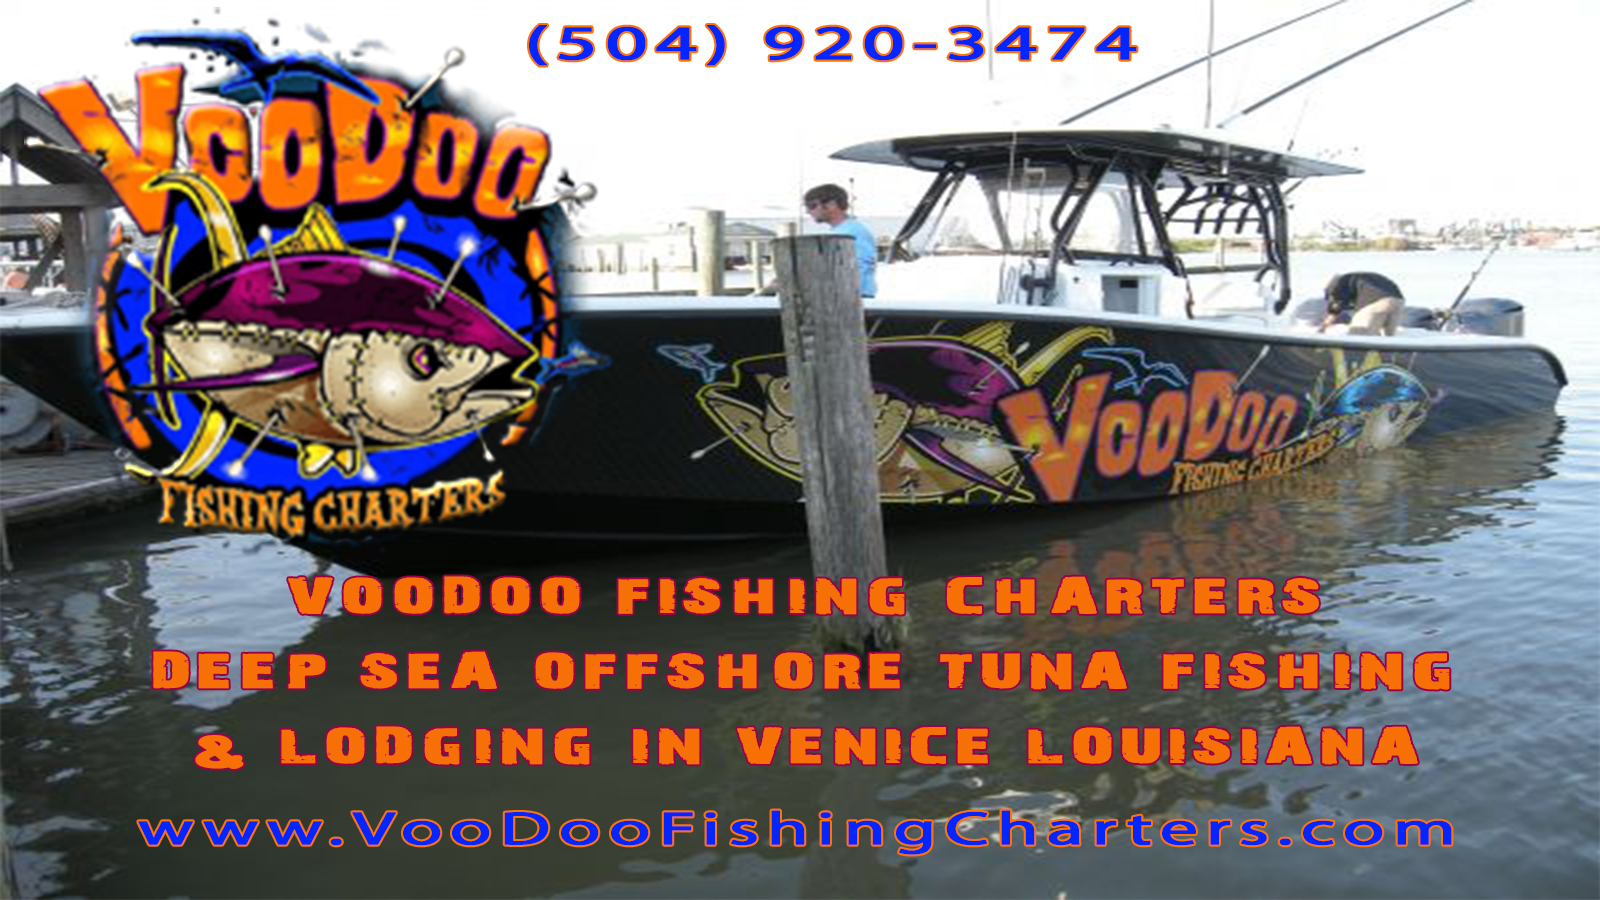 Voodoo fishing charters deep sea offshore tuna fishing for La fishing charters